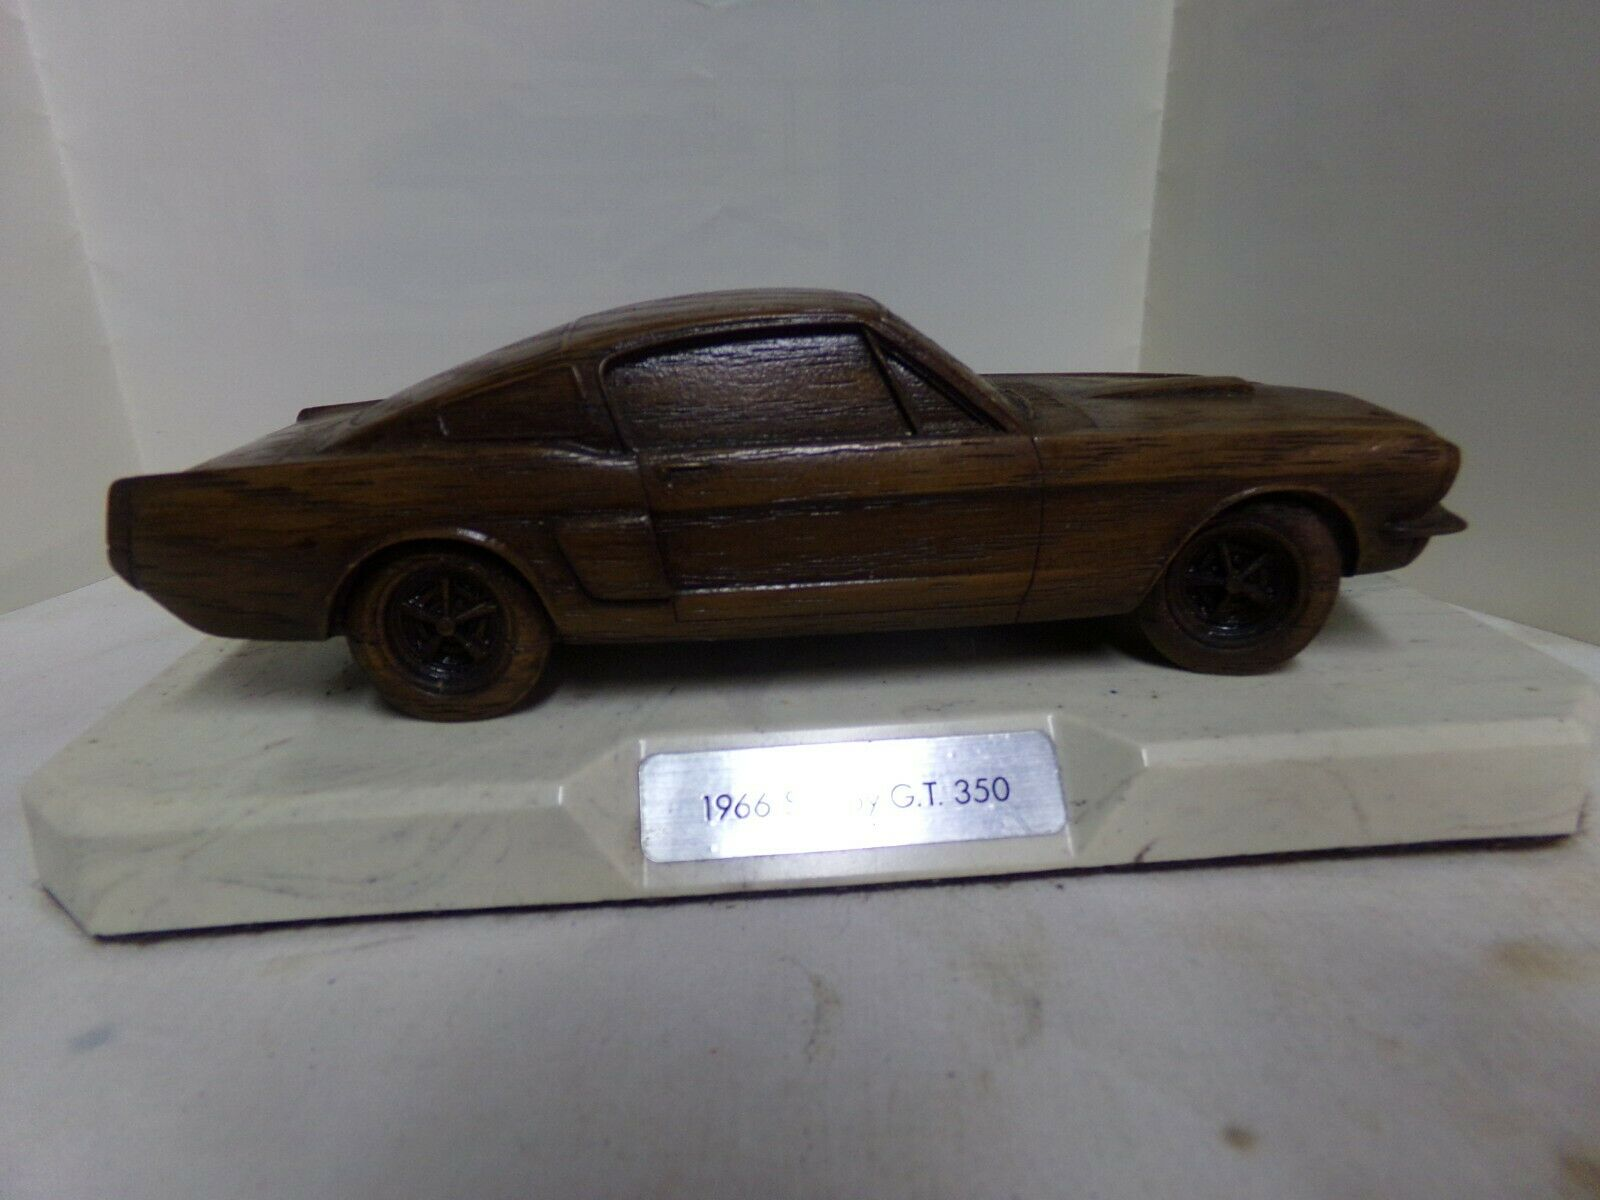 Shelby Collectibles 1966 Ford Shelby GT350 con aspecto de madera sobre base pesada 1982